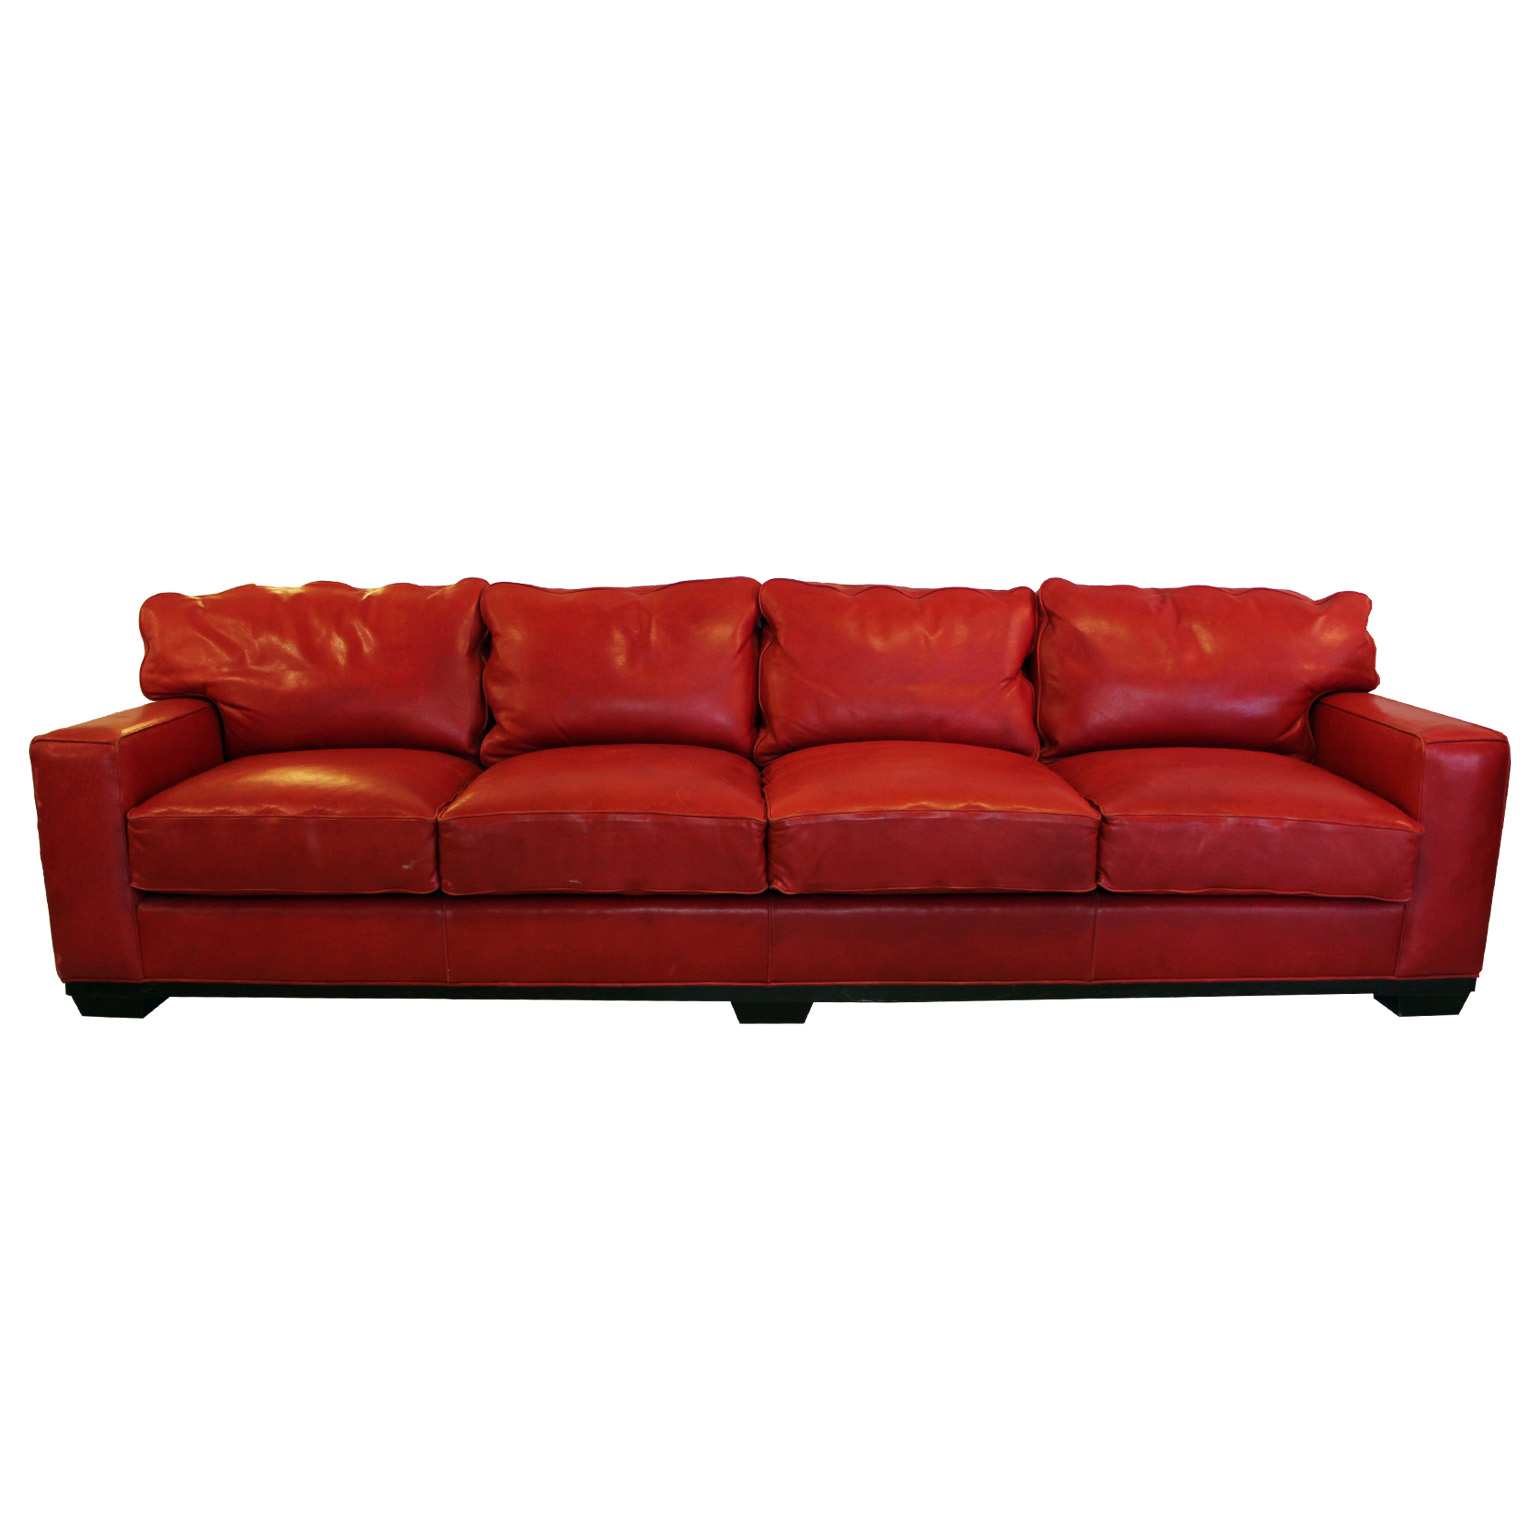 Texas Leather Sofa Bed